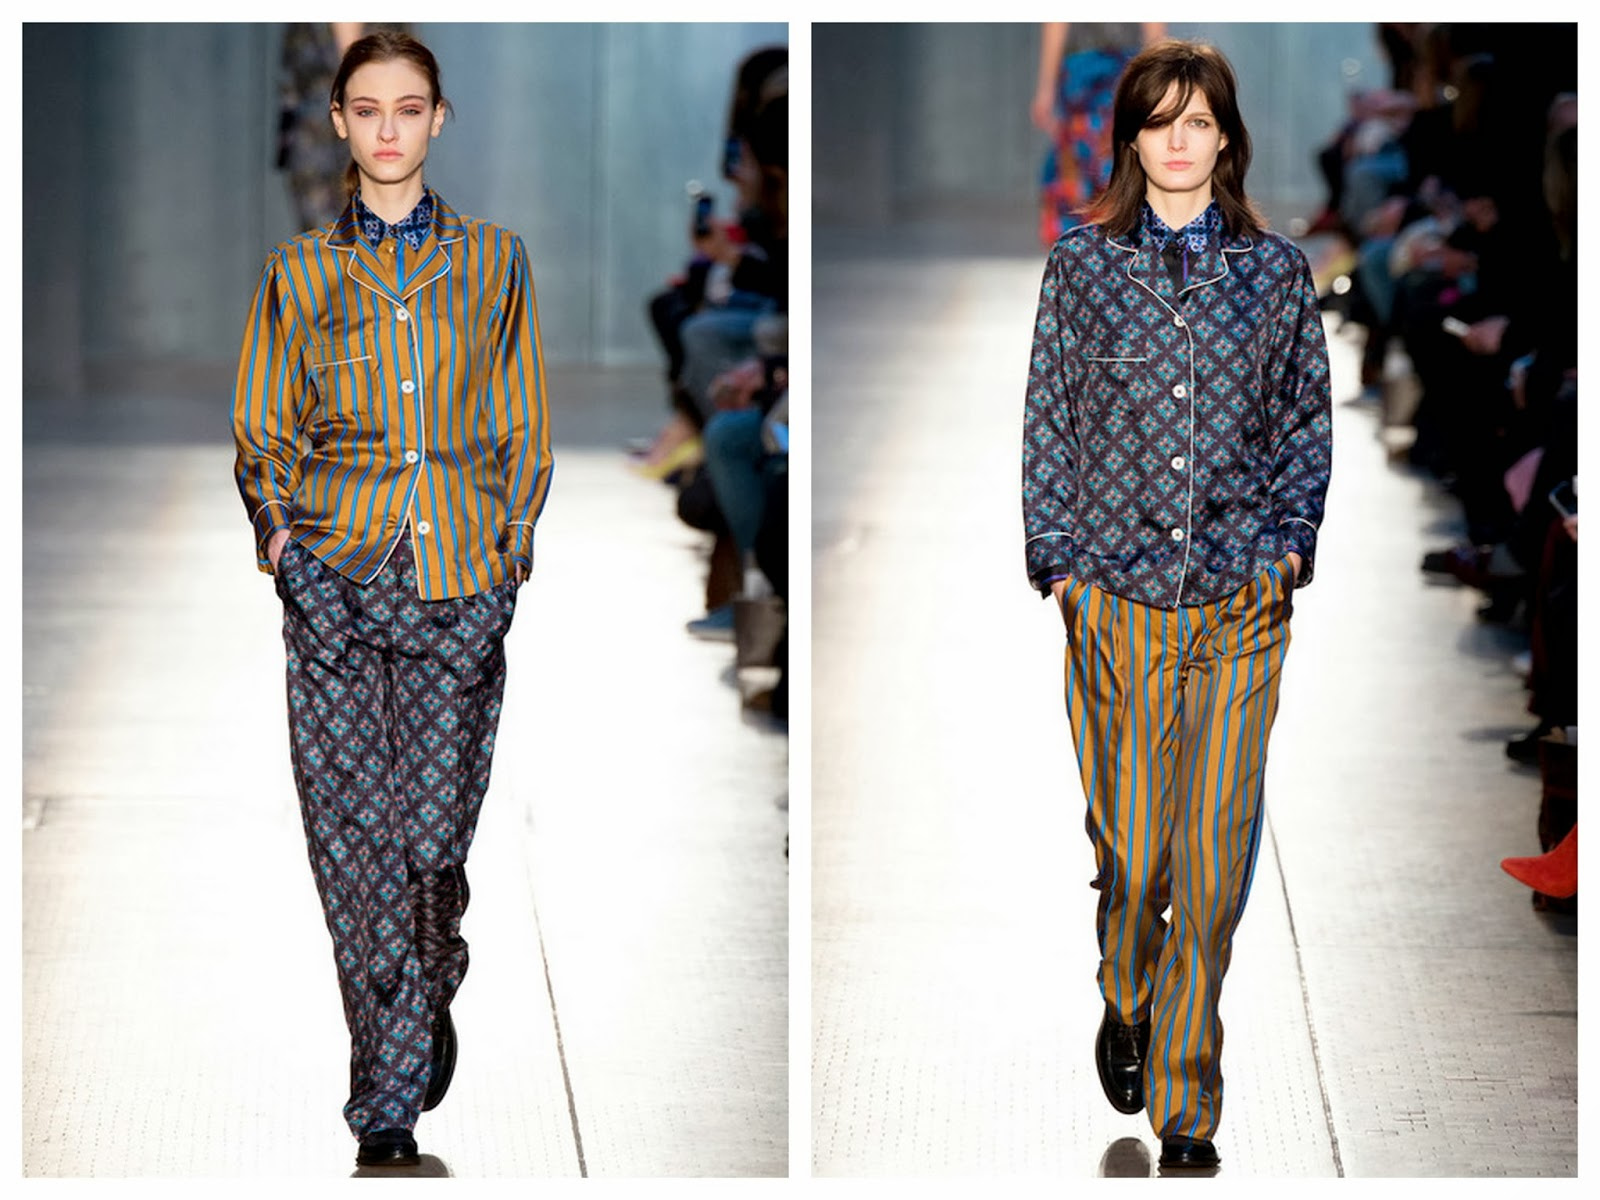 paul smith,pyjama,soie,hiver 2014,fall 2014,londres,london fashion week